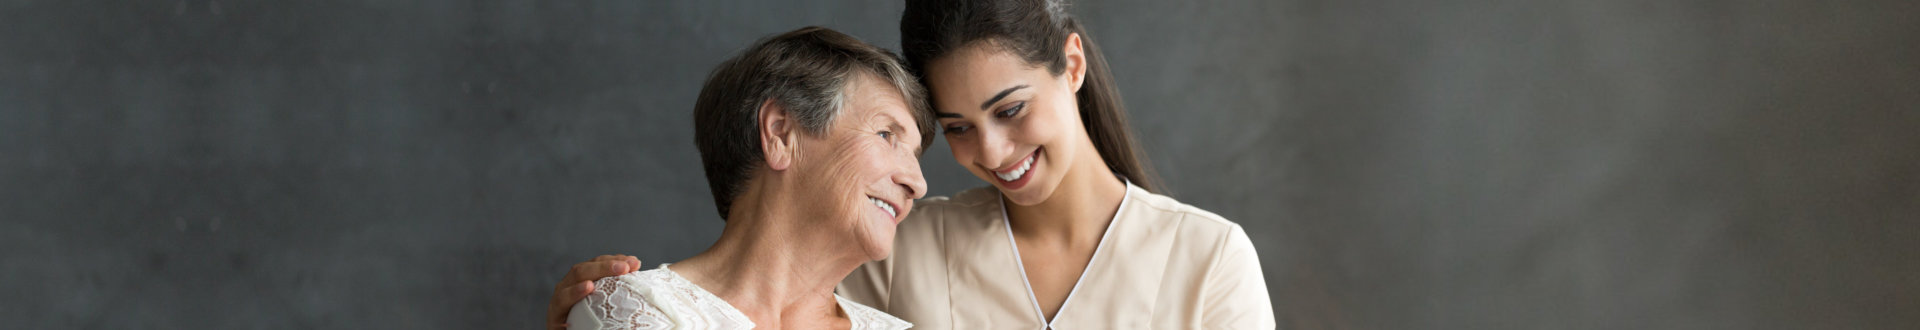 caregiver with senior woman on a dark background